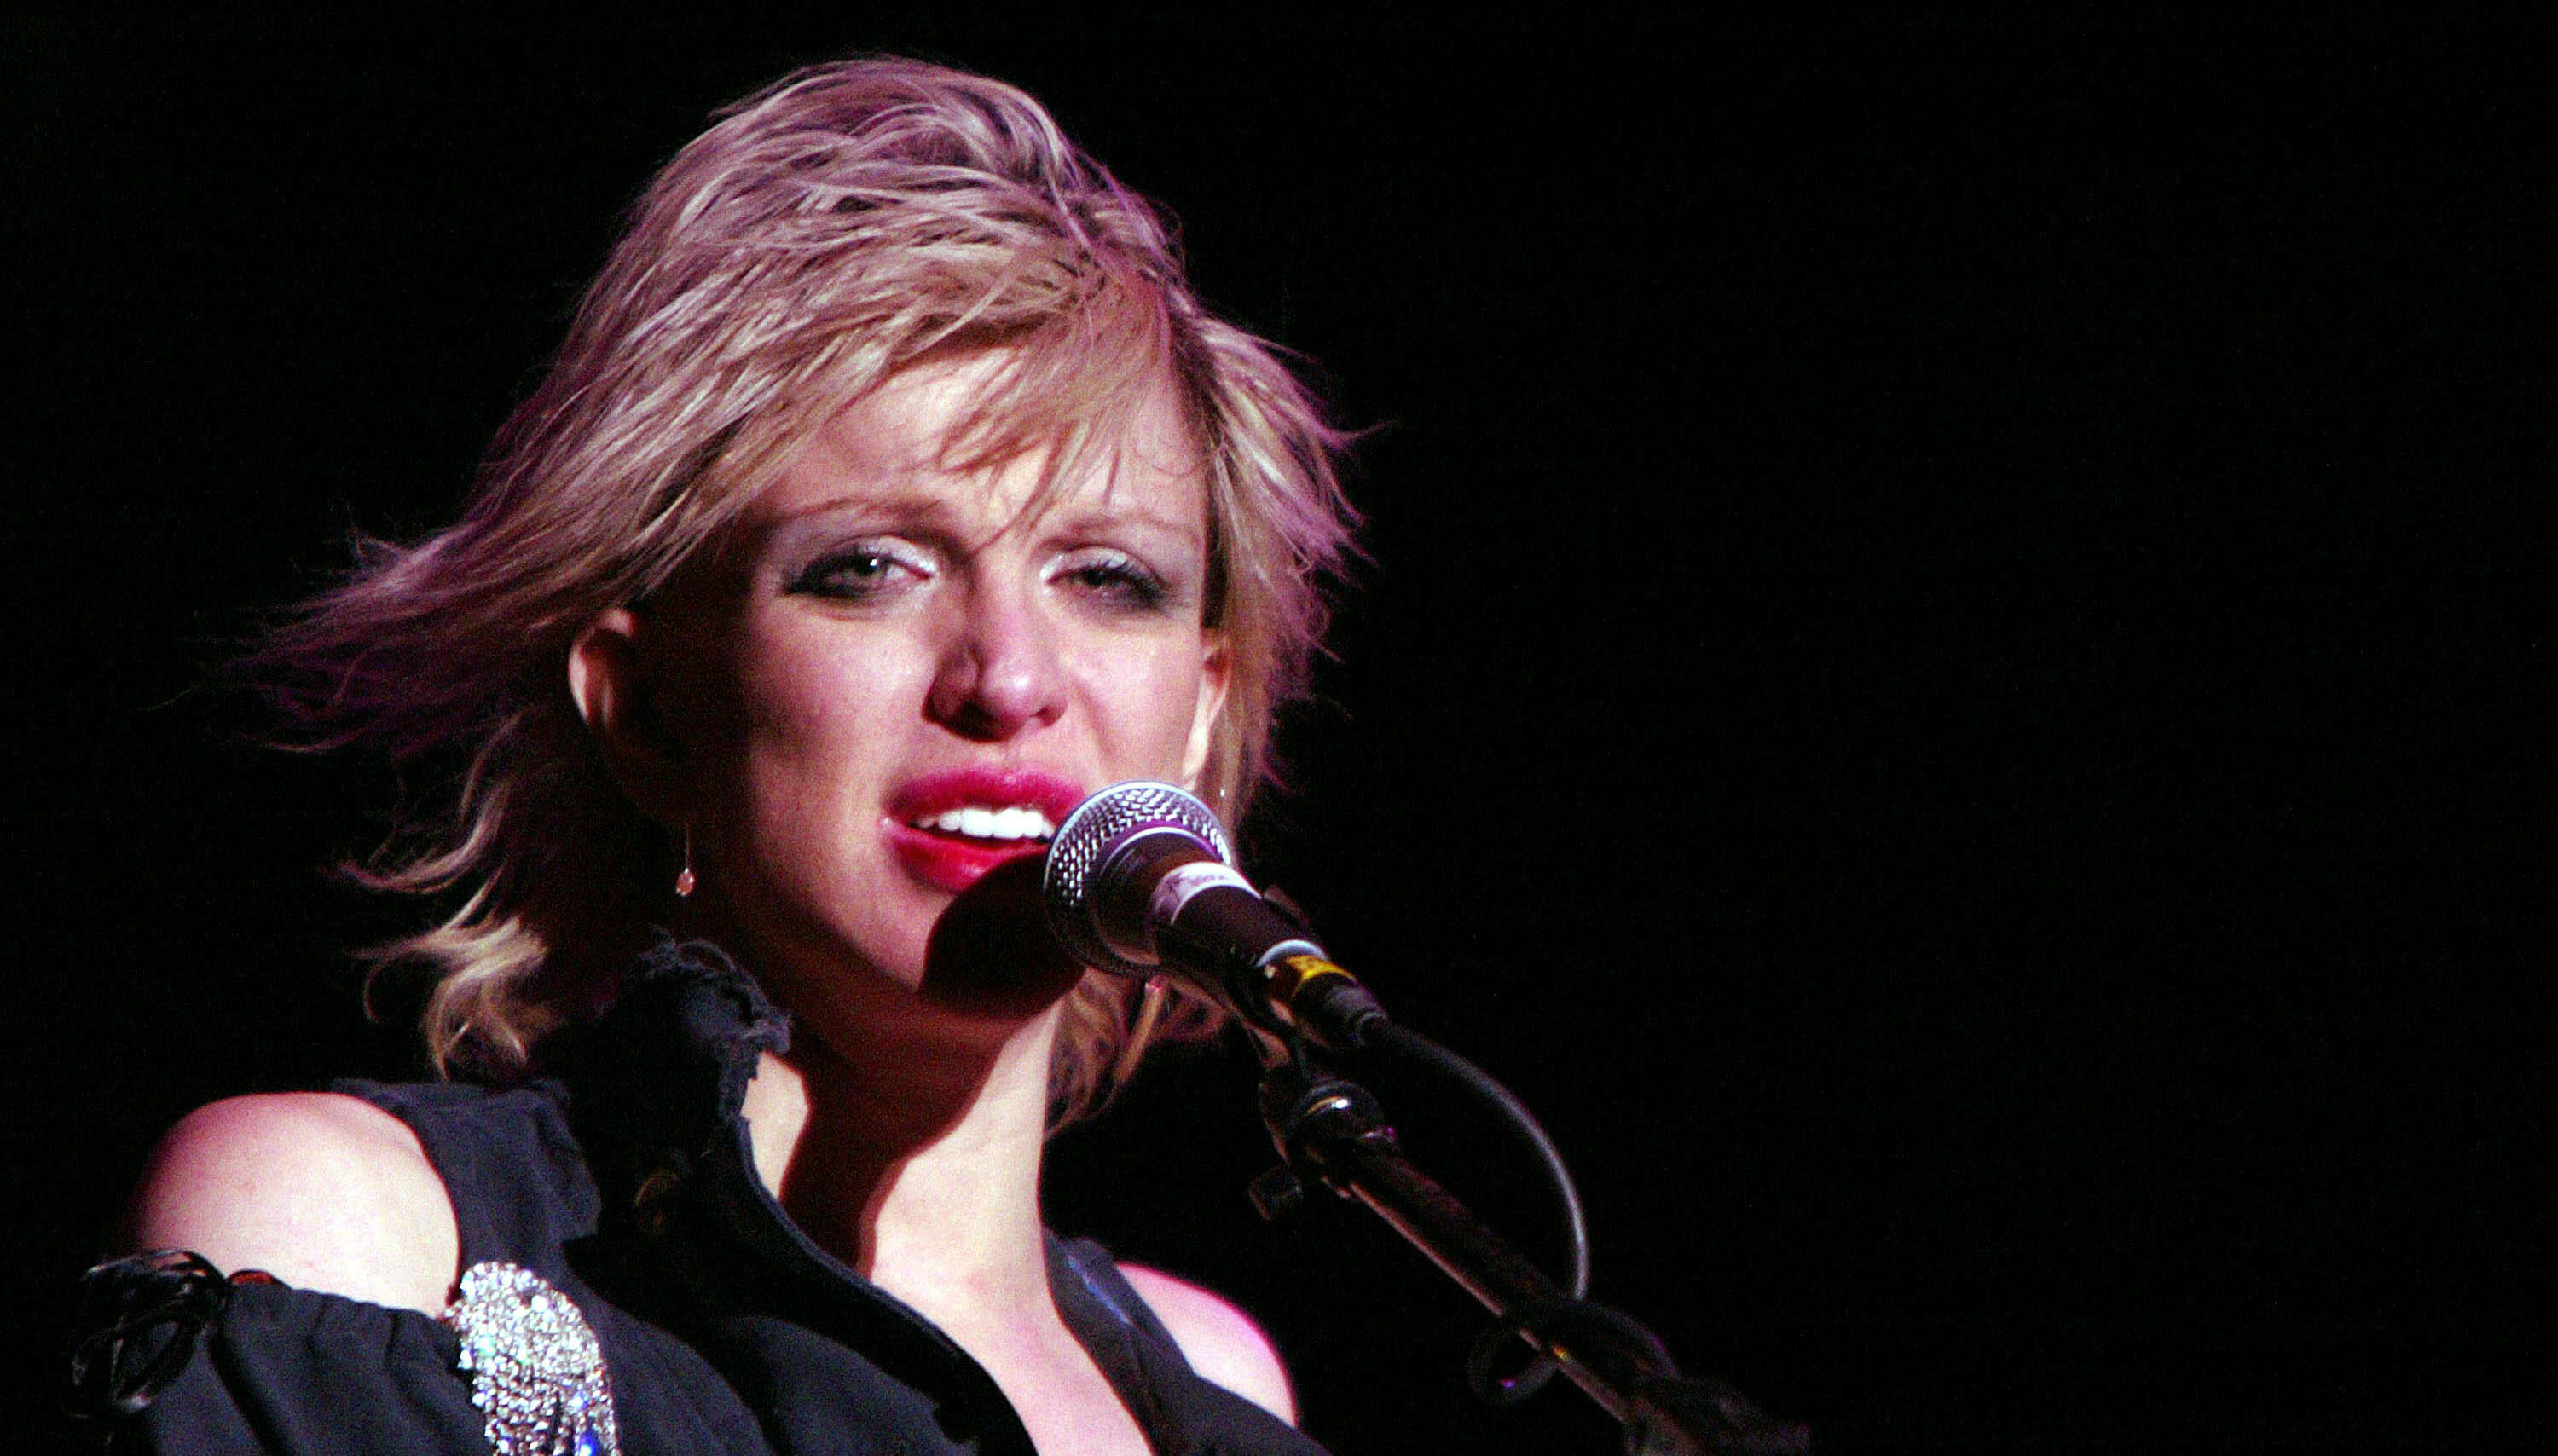 Producer Explains Why Courtney Love Was Great To Work With In The Studio